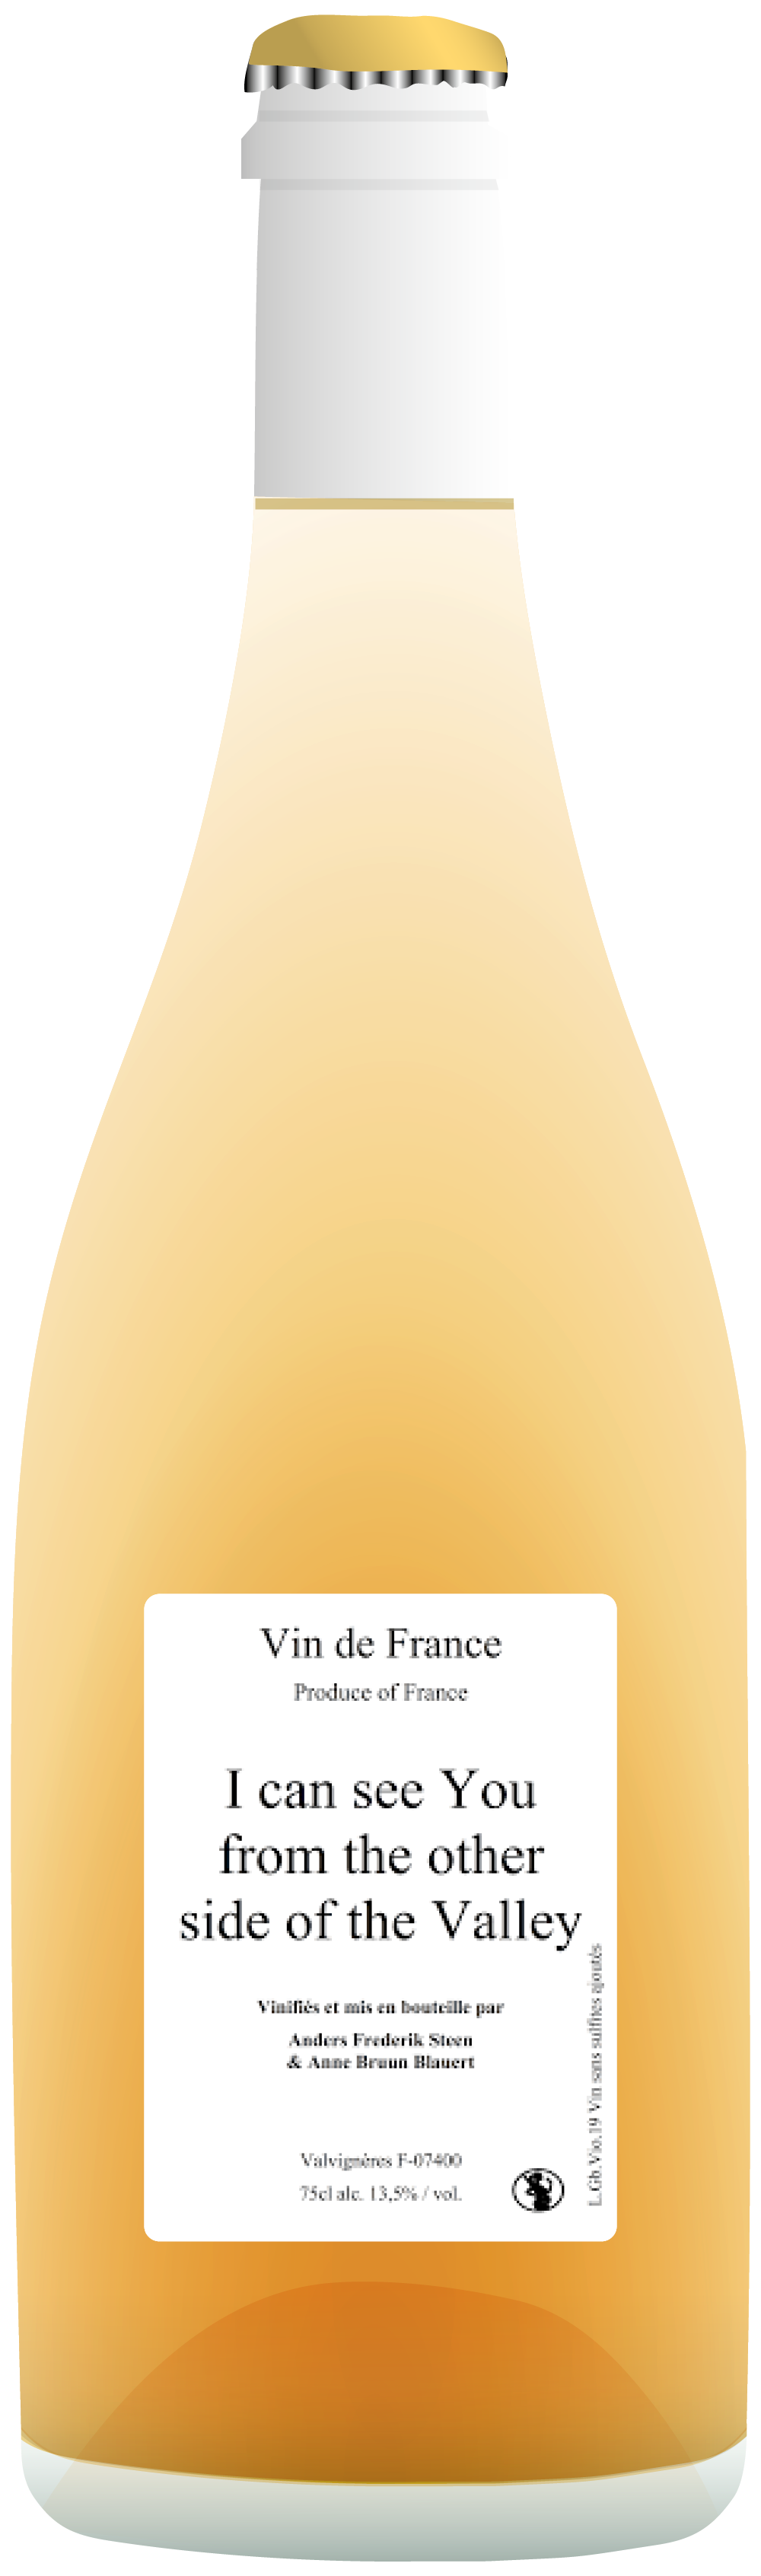 the natural wine company club july 2021 france anders frederik steen anne bruun blauert i can see you from the other side of the valley